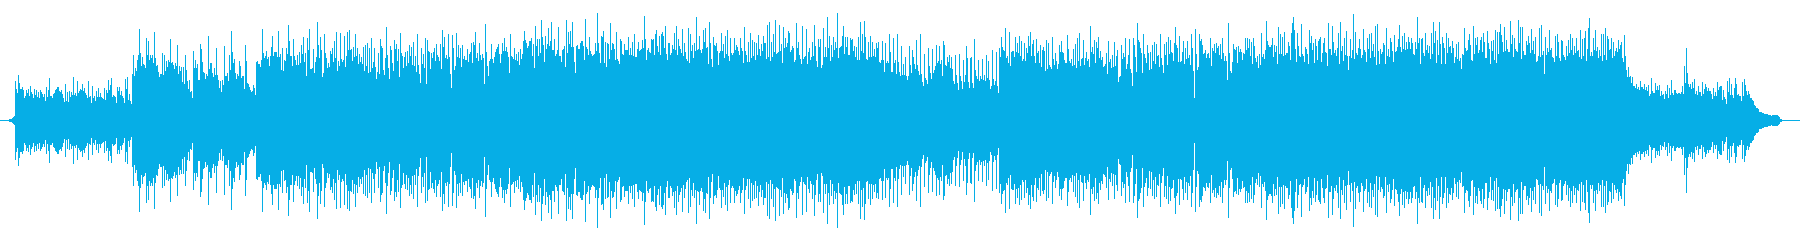 Energetic, Upbeat, Sports - Acoustic guitar's reproduced waveform